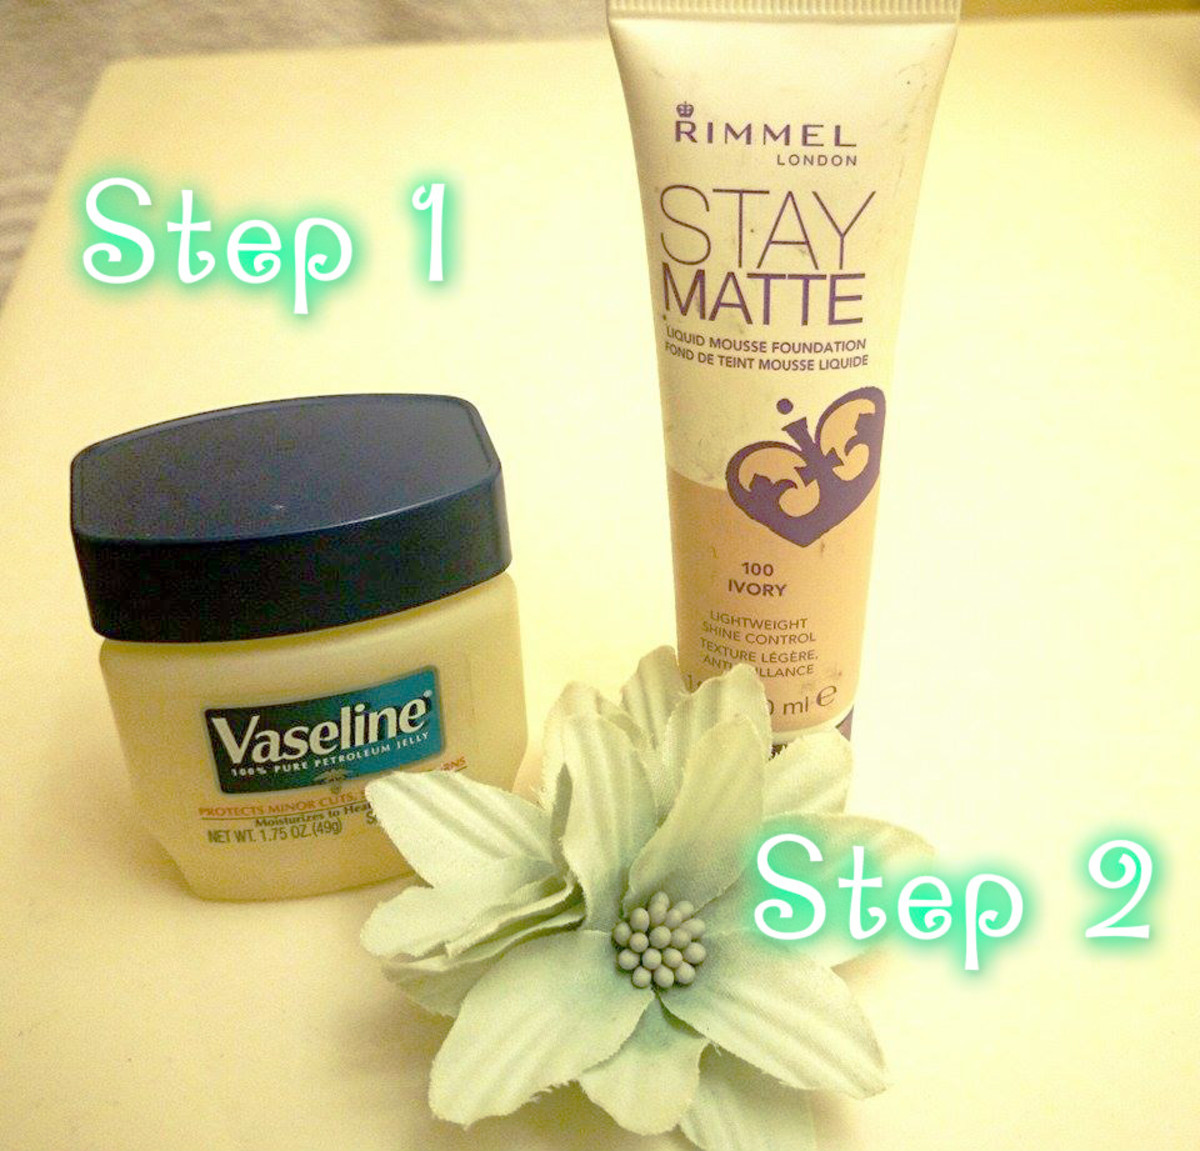 Vaseline helps your foundation look natural like no primer ever could.